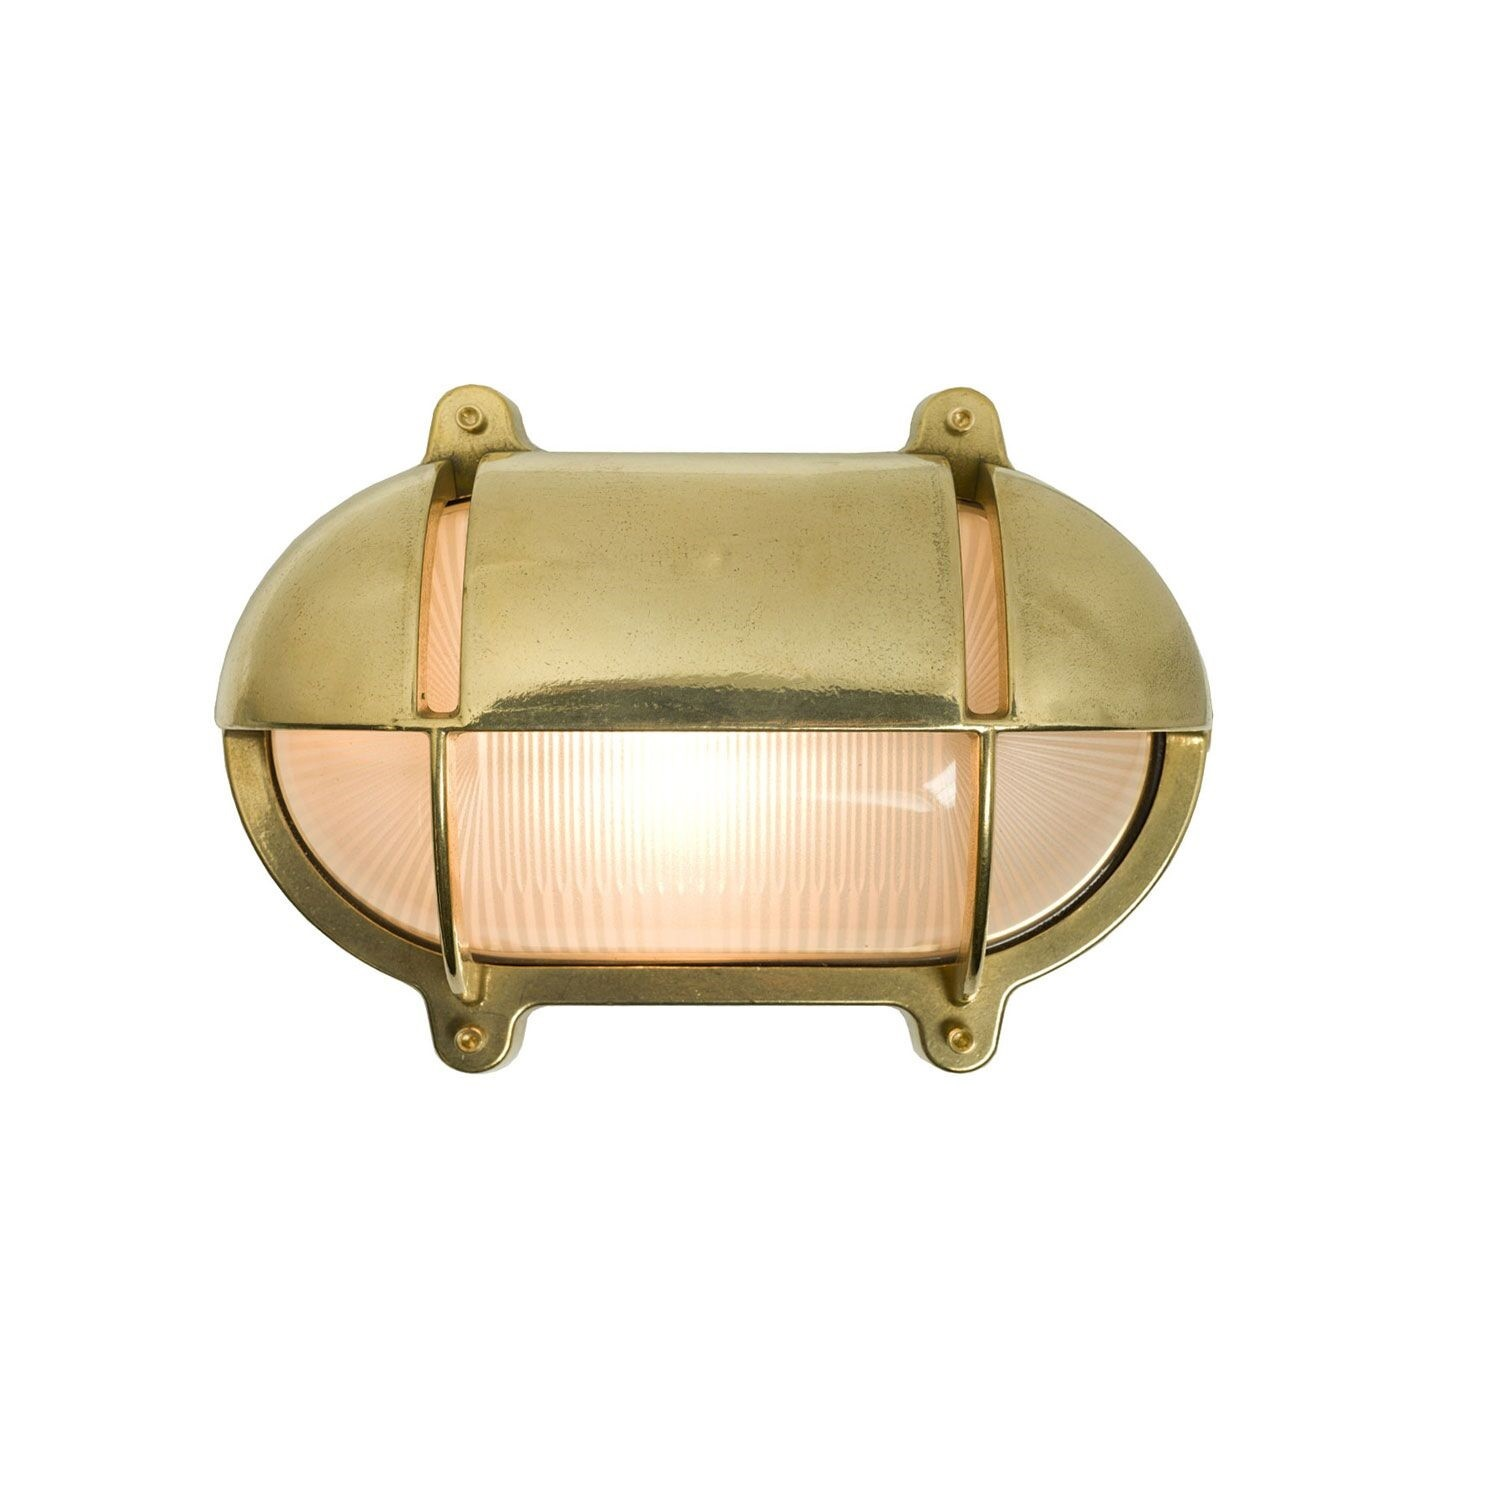 Oval Brass Bulkhead With Eyelid Shield Natural Brass, Small